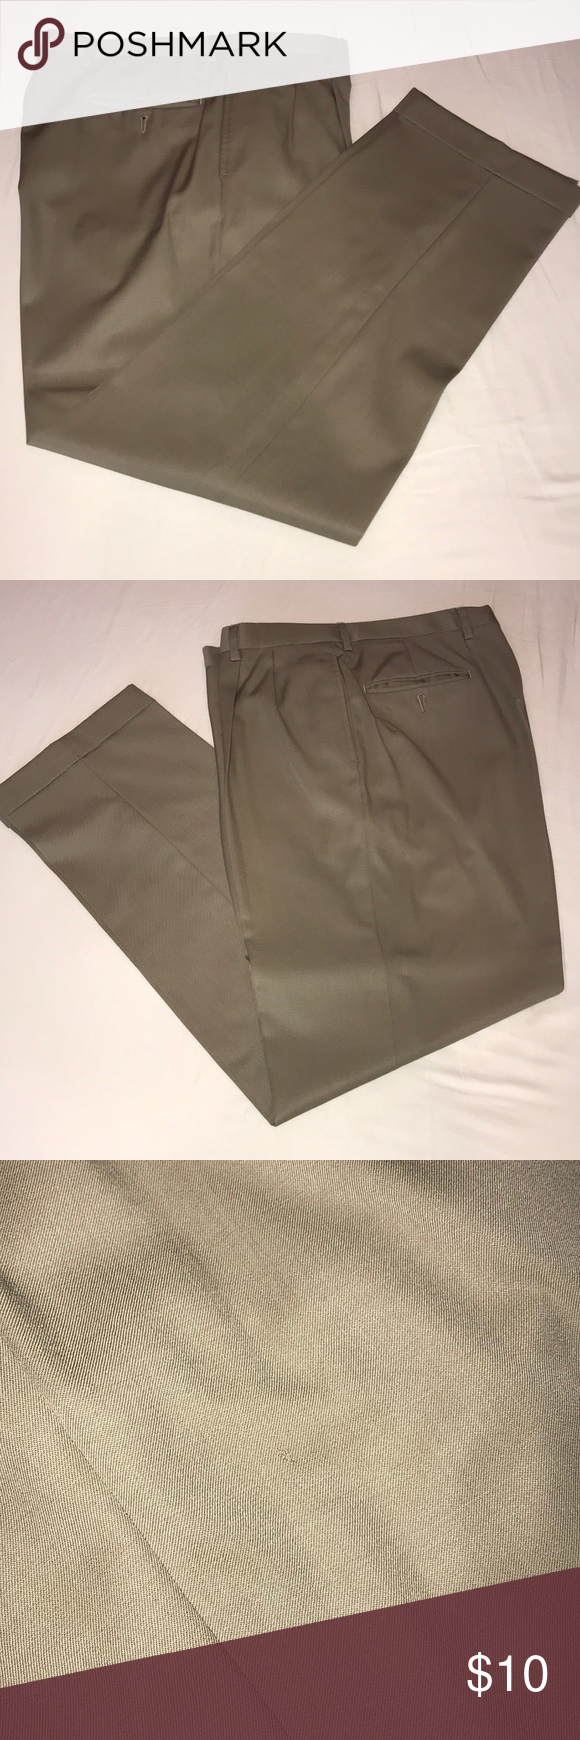 Austin Reed Men S Dress Pants Size 36x32 Dress Pants Austin Reed Mens Dress Pants